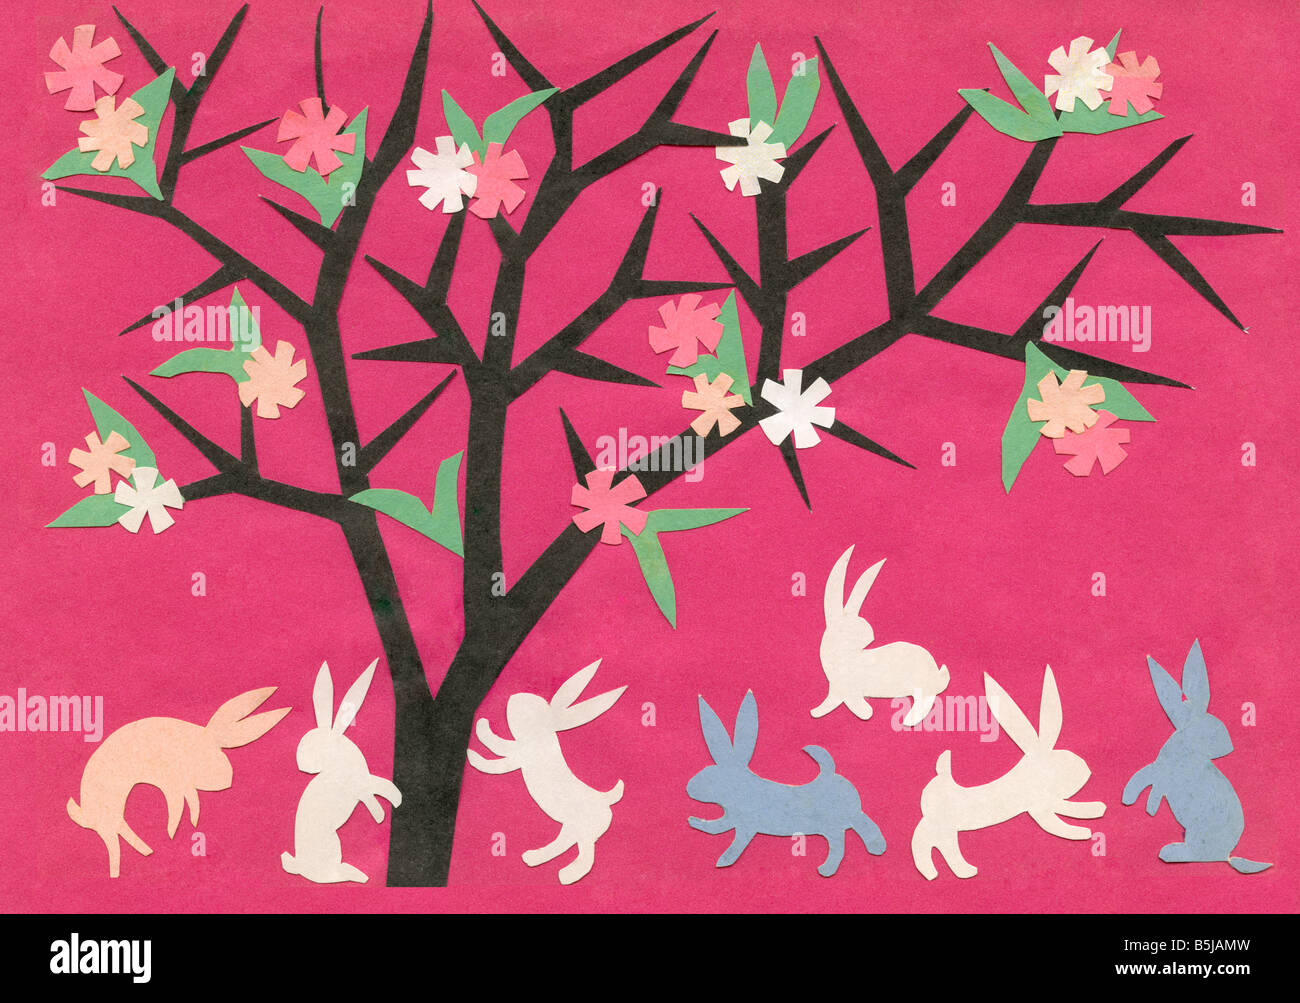 Paper Cutting Easter Greeting Cards By Miss Krystyna Majewska From